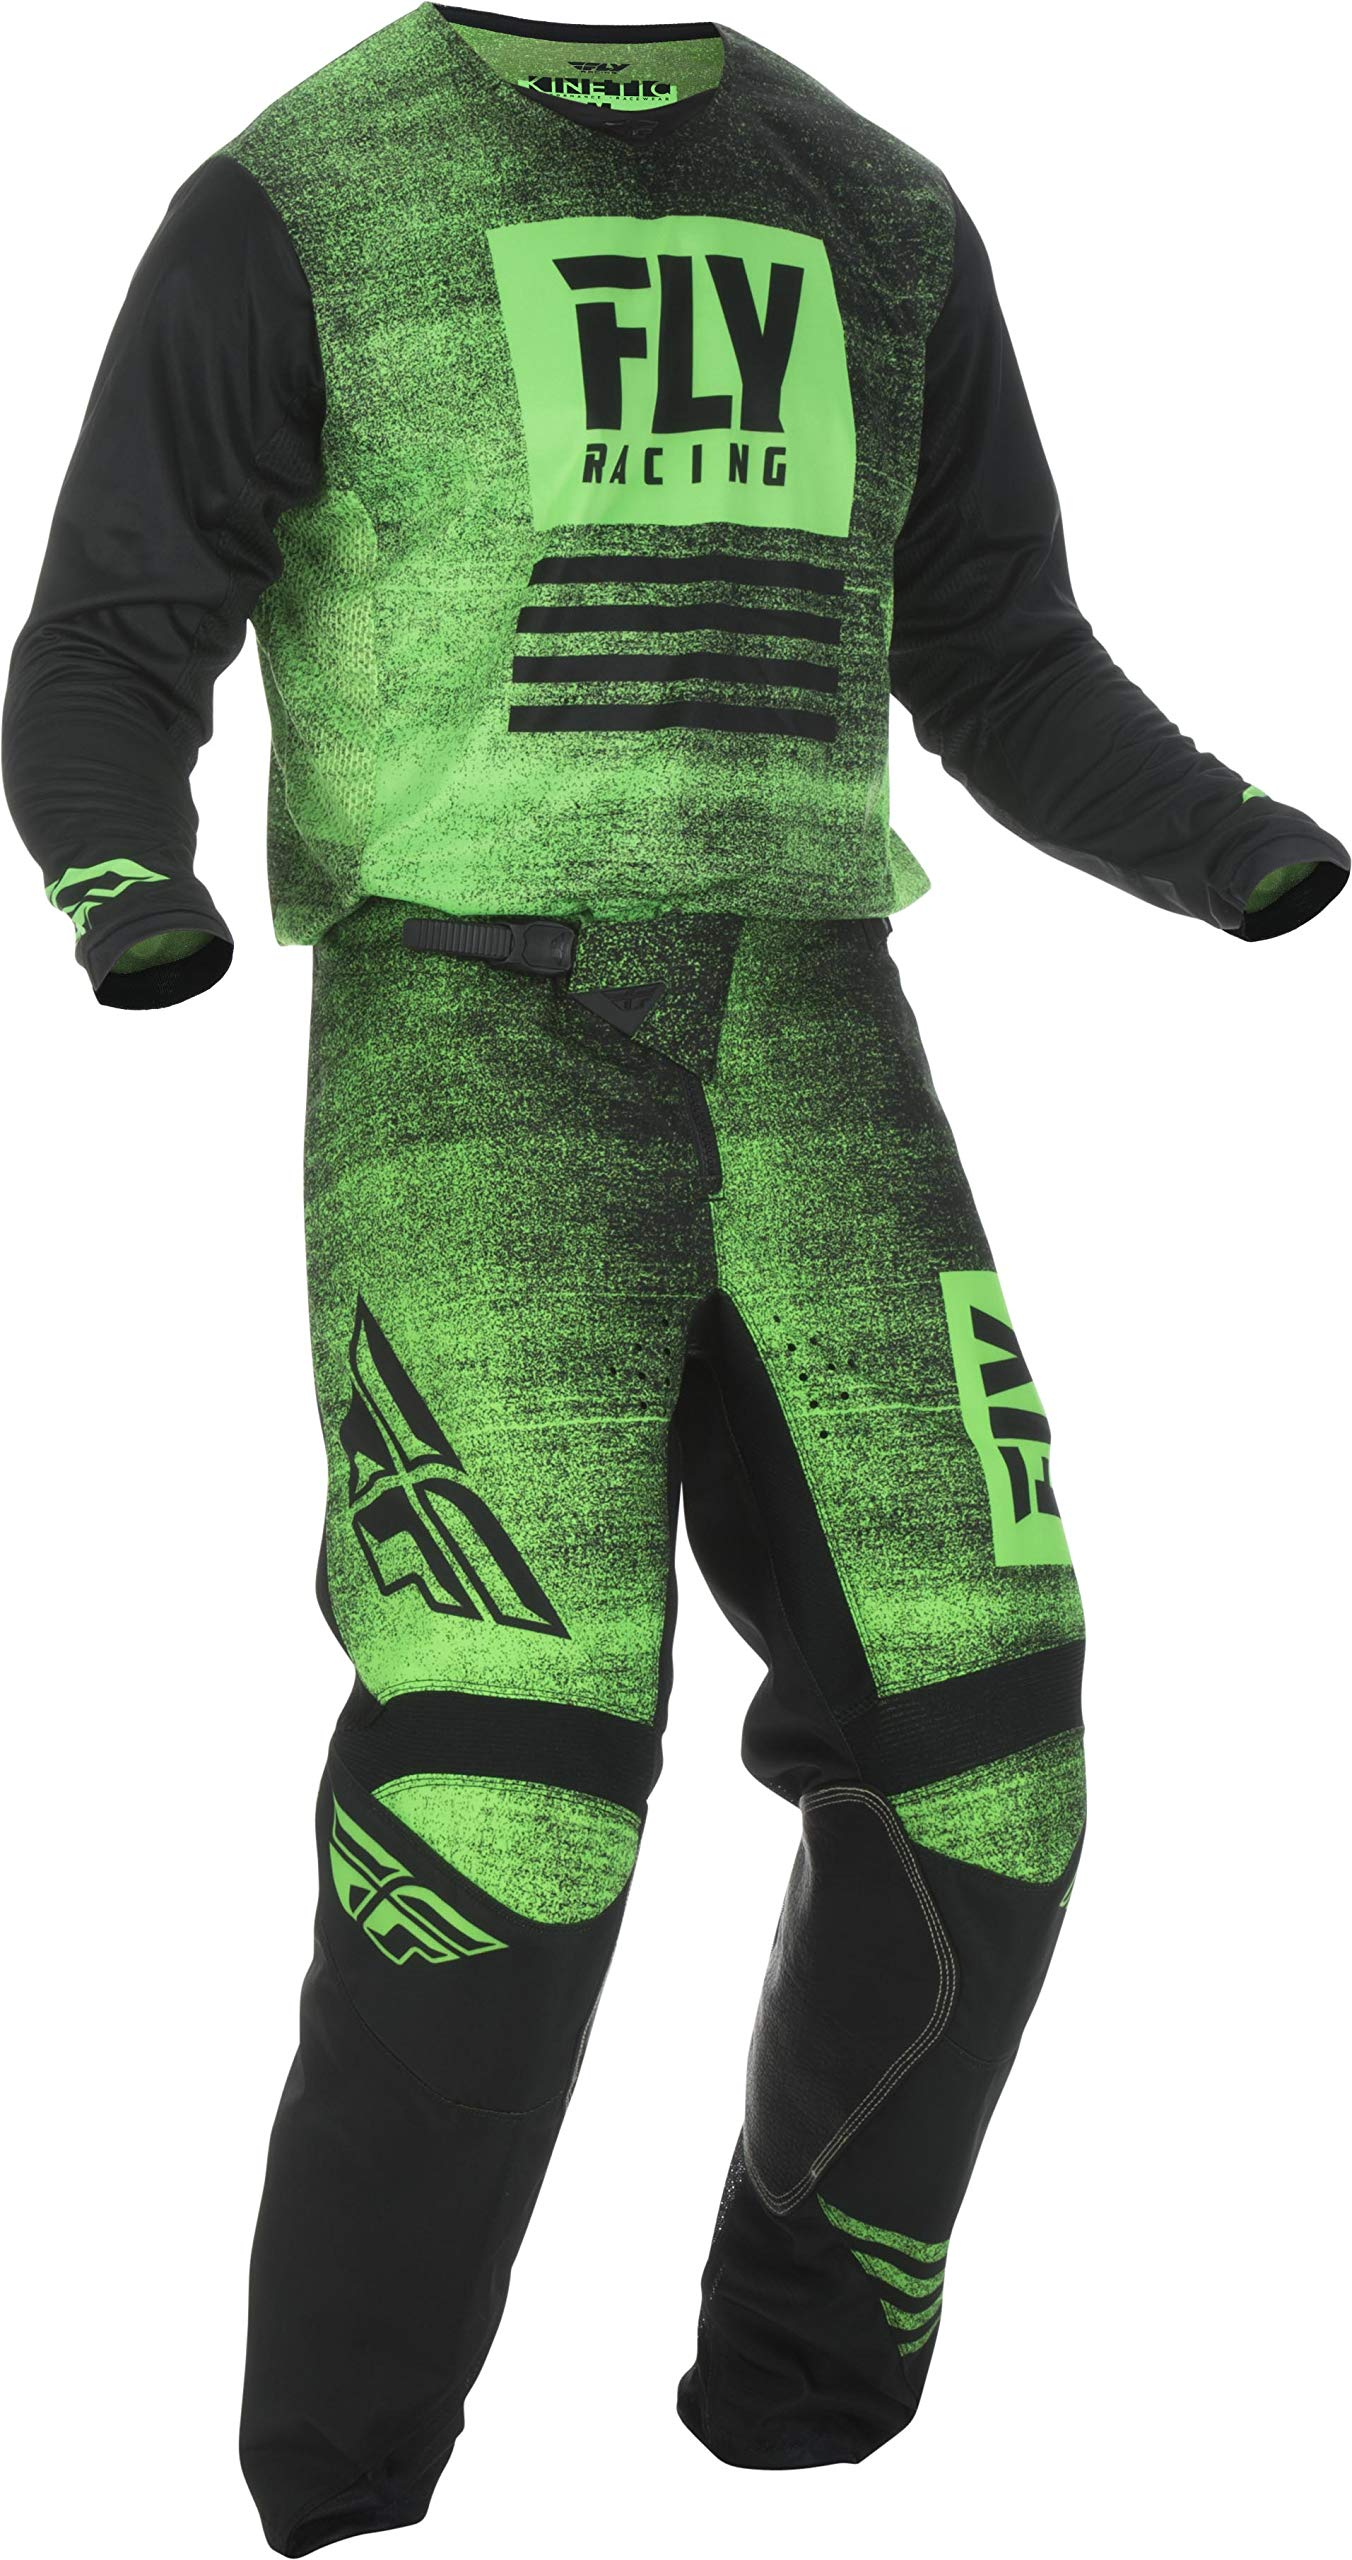 Fly Racing - 2019 KINETIC NOIZ (Mens NEON GREEN & BLACK X-Large/34W) MX Riding Gear Combo Set Motocross Off-Road Dirt Bike Light Weight Durable Jersey & Mesh Comfort Liner Stretch Pre Shaped Knee Pant